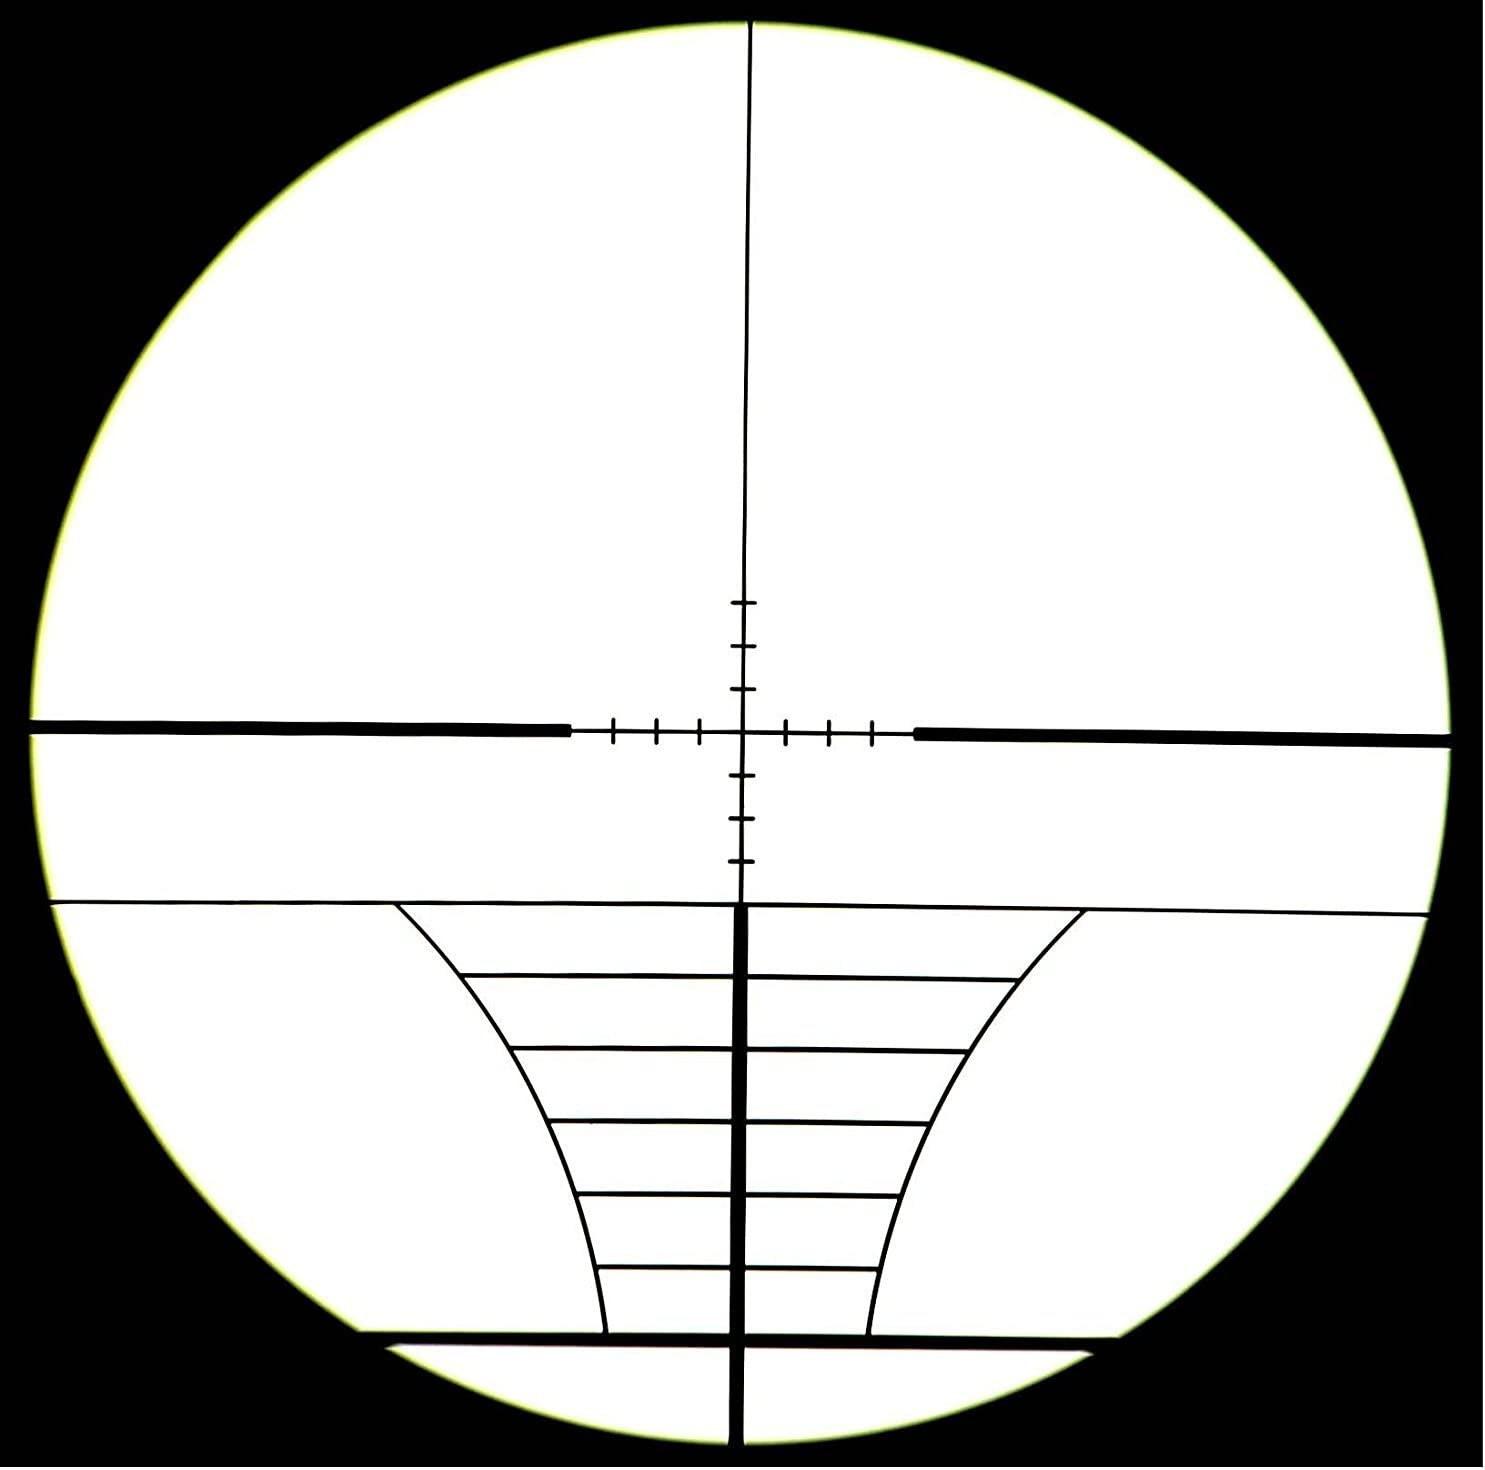 360 TACTICAL 4x32 mm Mil-Dot Modern Range Finding Red Green Illuminated Scope Shooting Scope